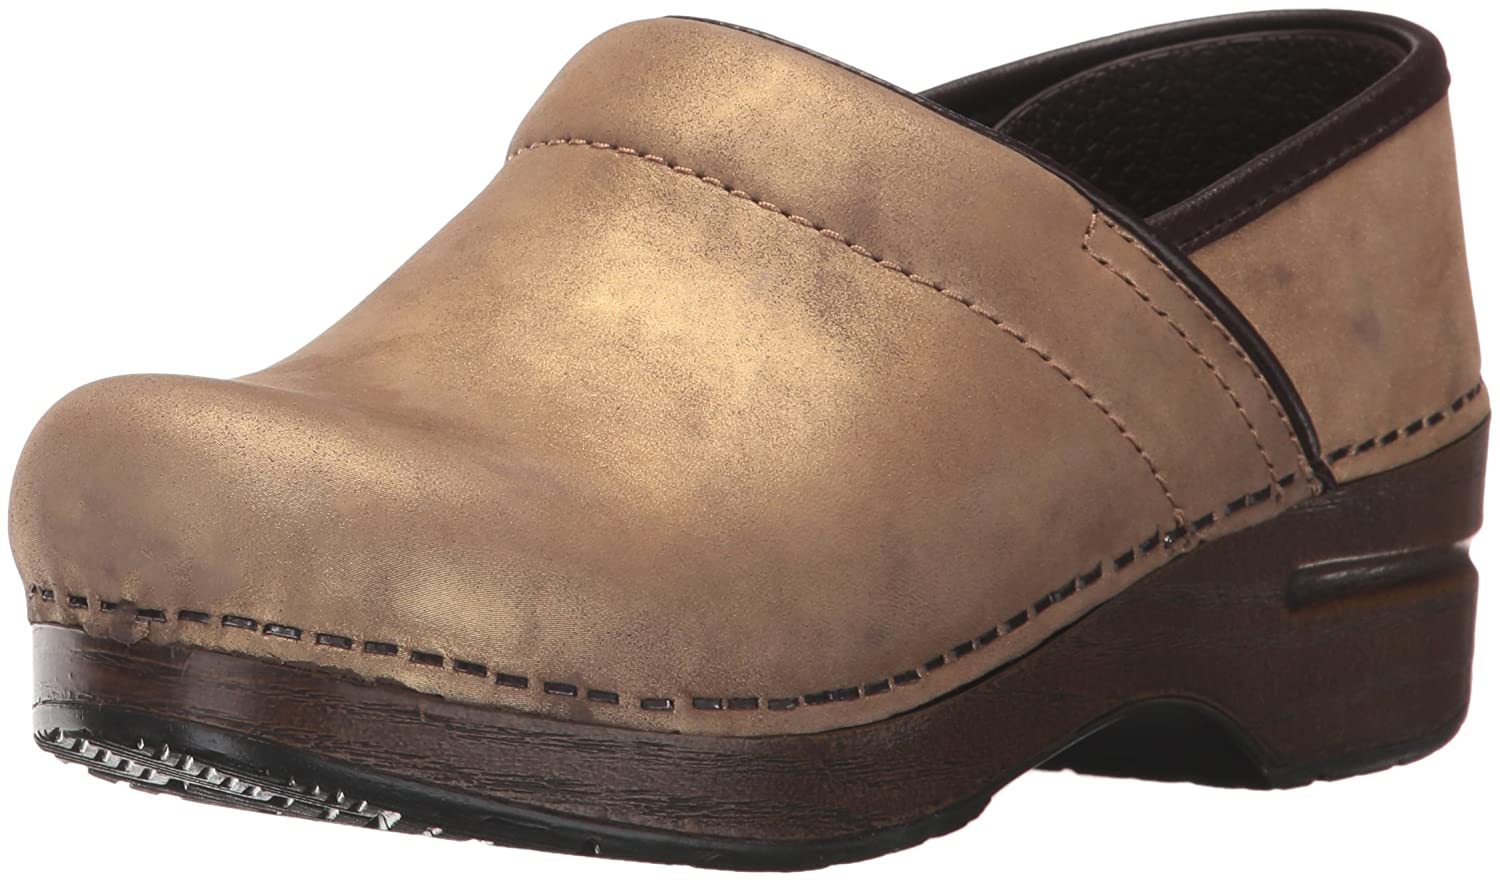 [ダンスコ]dansko フラットシューズ Professional B01N2YP9HP 39 M EU / 8.5-9 B(M) US|Bronze/Metallic Bronze/Metallic 39 M EU / 8.5-9 B(M) US